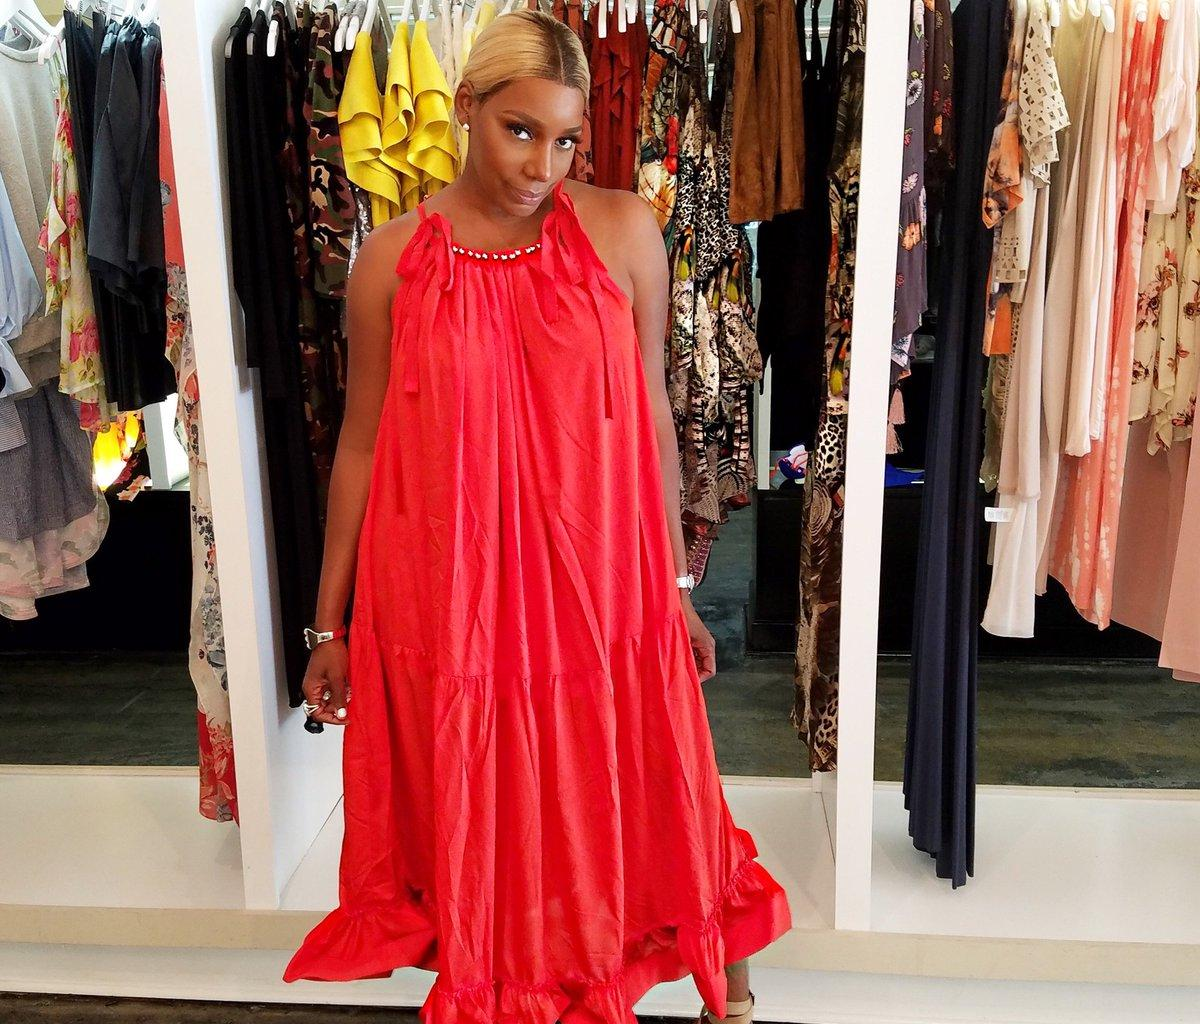 Some Of NeNe Leakes' Fans Are Freaking Out At The Rumors That Tamar Braxton Might Replace Her On RHOA